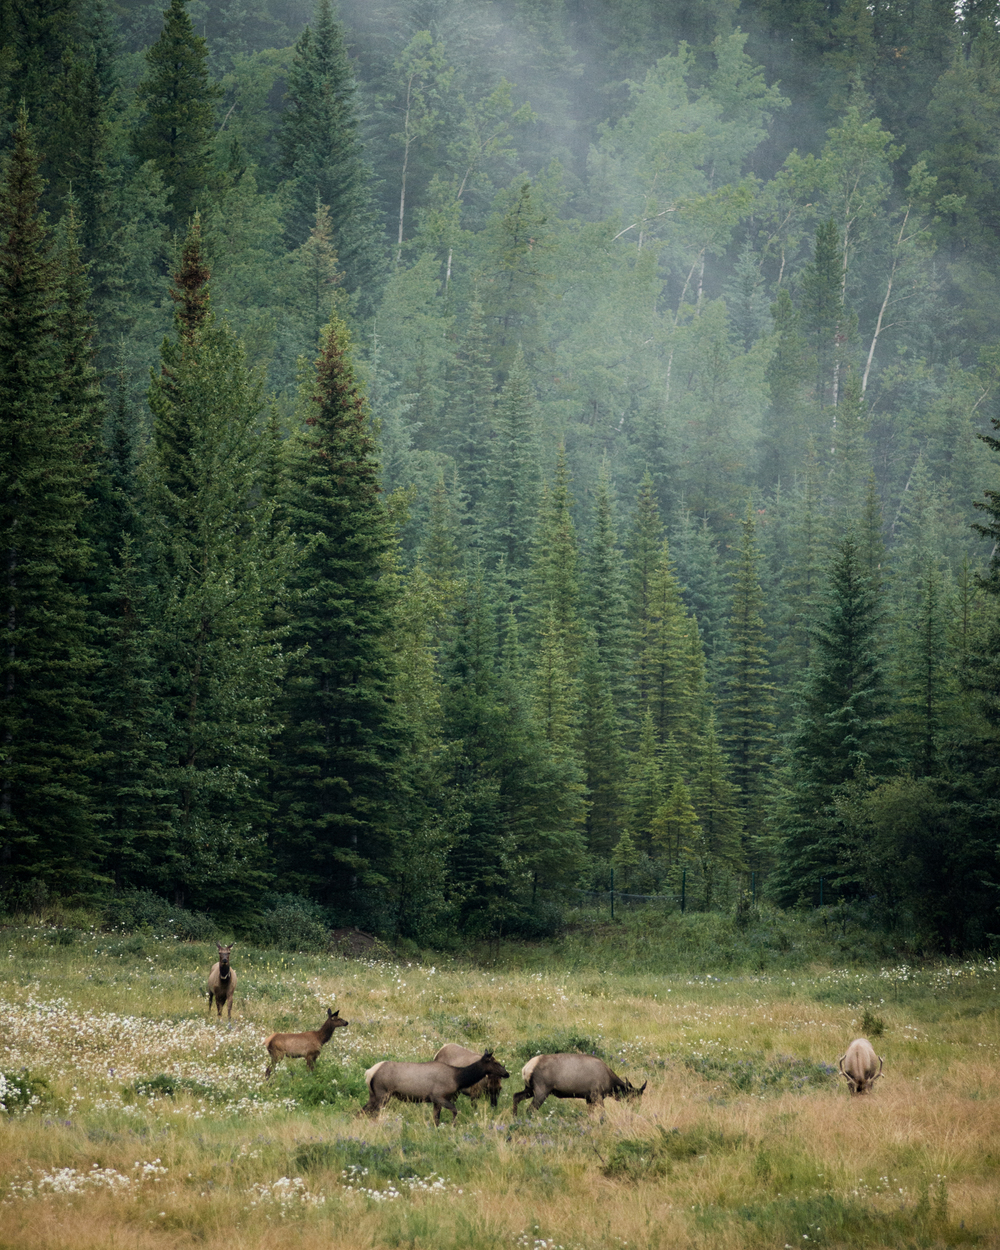 Elk in the forest